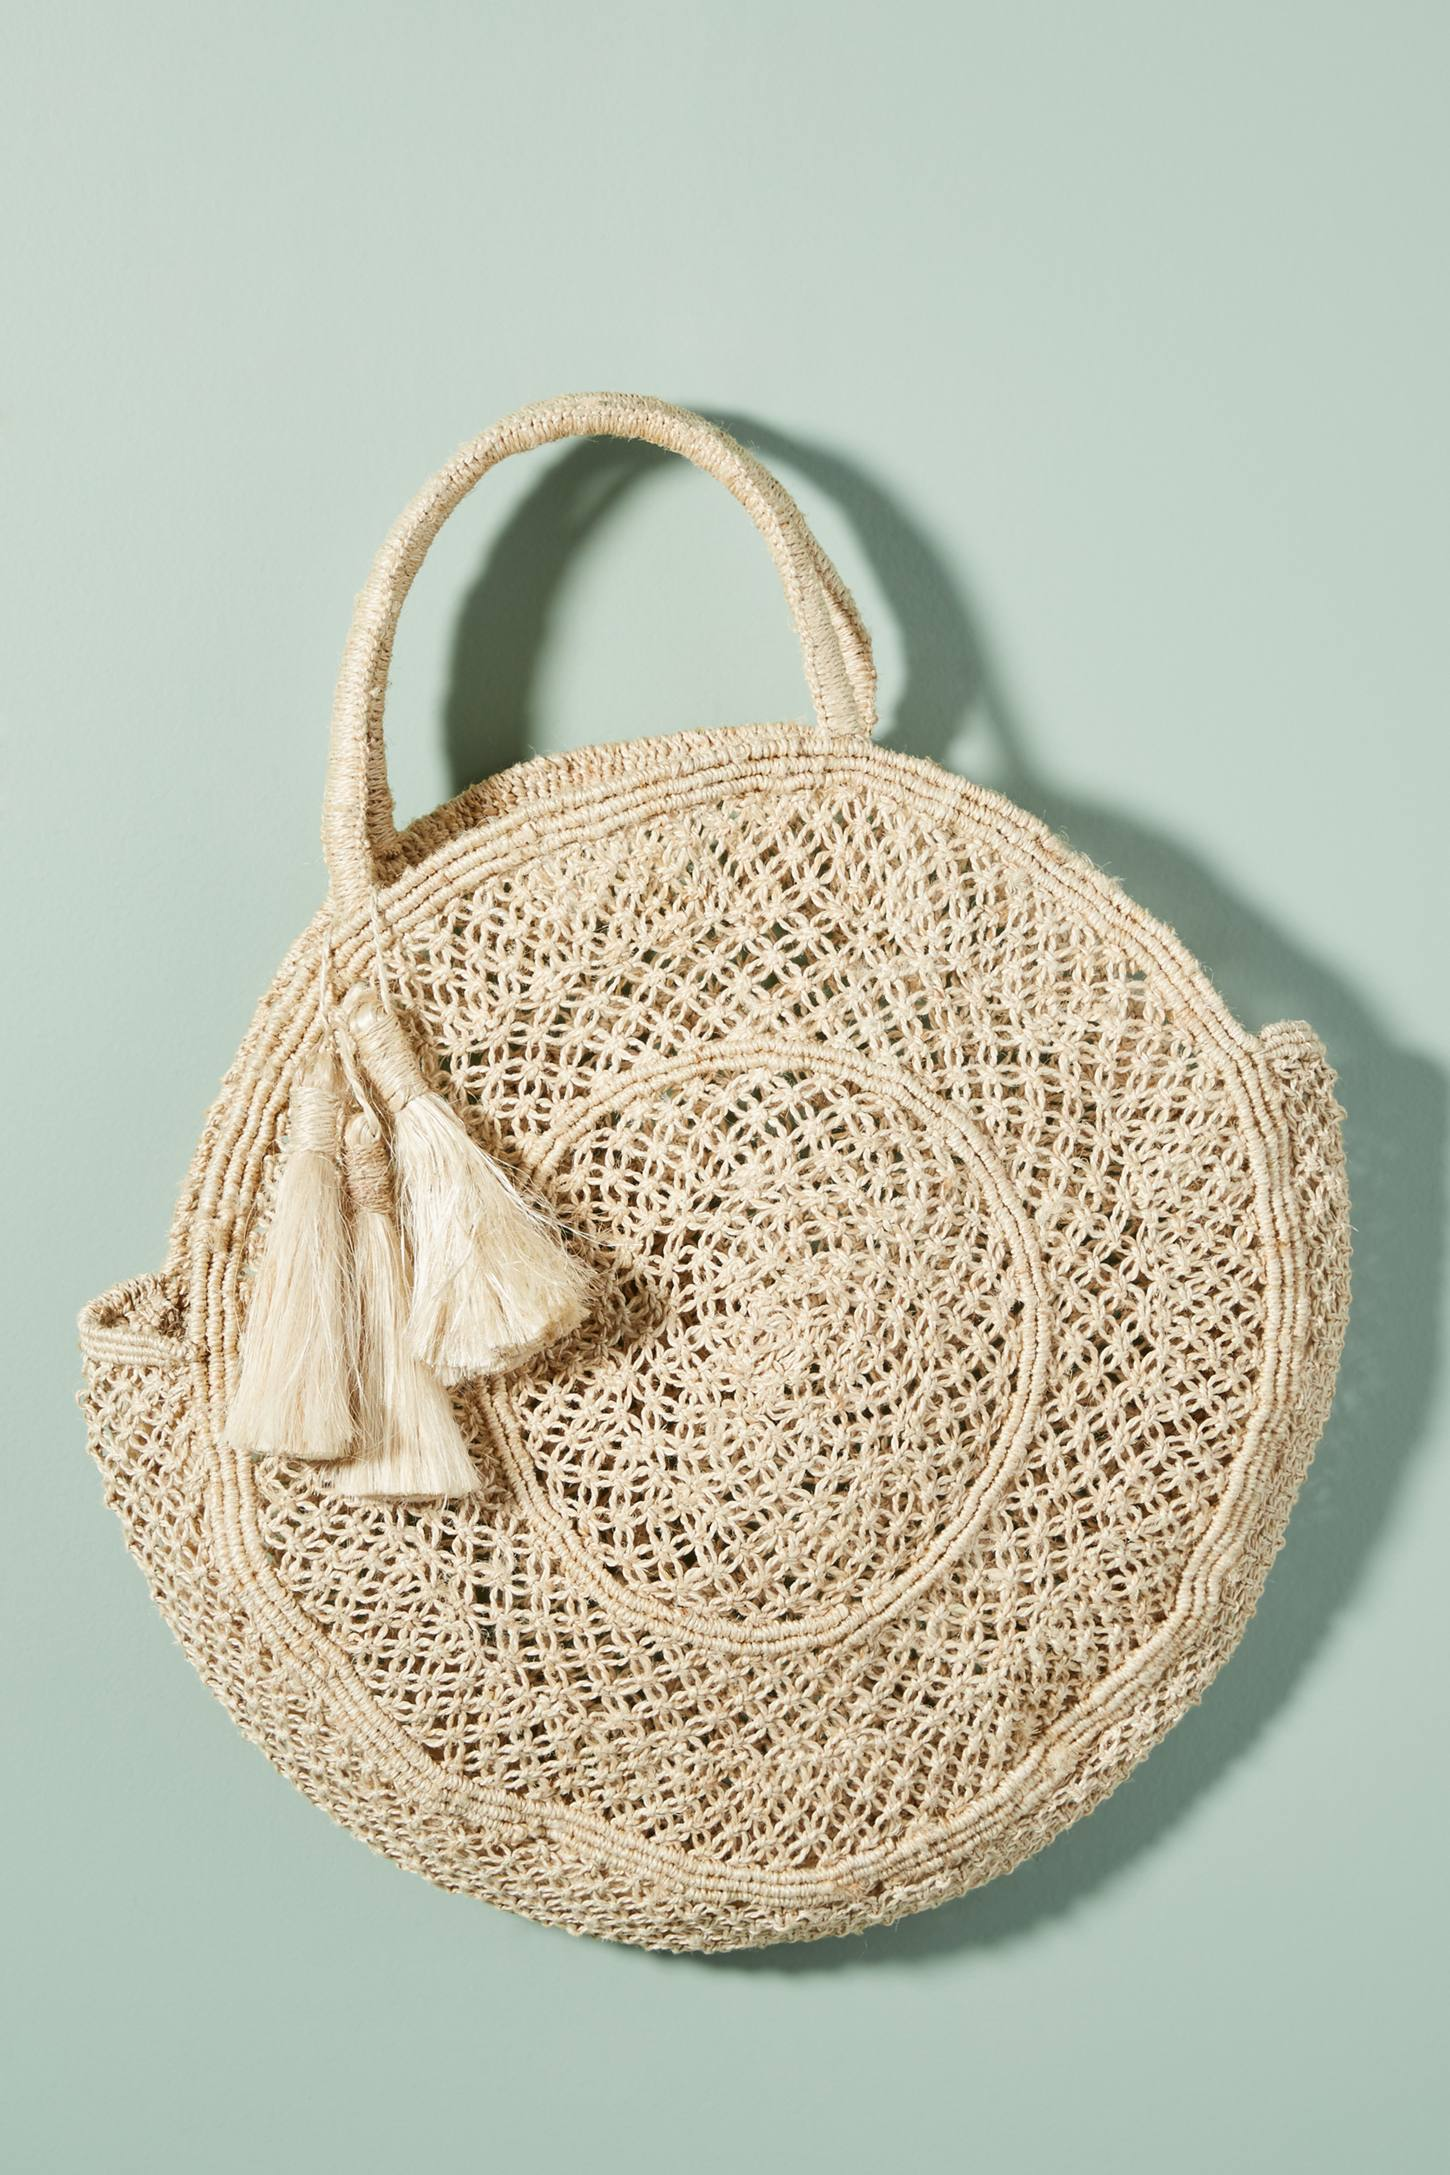 Round Woven Straw Tote Bag with Tassels